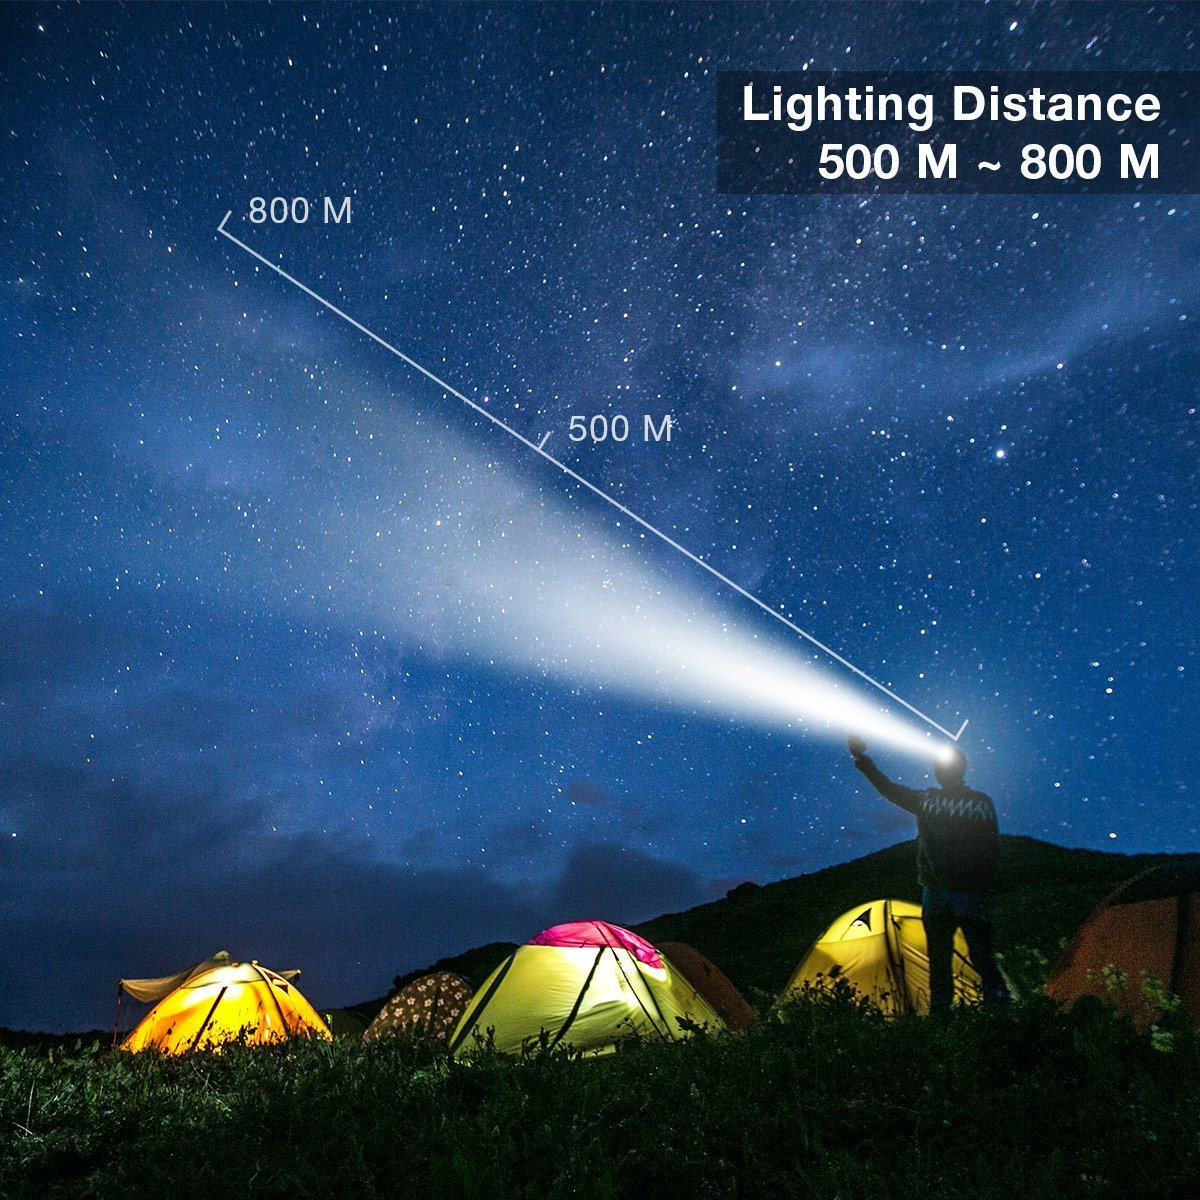 Brightest and Best LED Headlamp 9000 Lumen flashlight - Leading Technology CREE LED, Rechargeable 18650 headlight flashlights Waterproof Hard Hat Light,Outdoor & Indoor Fishing Camping headlamps by Ankeca (Image #6)